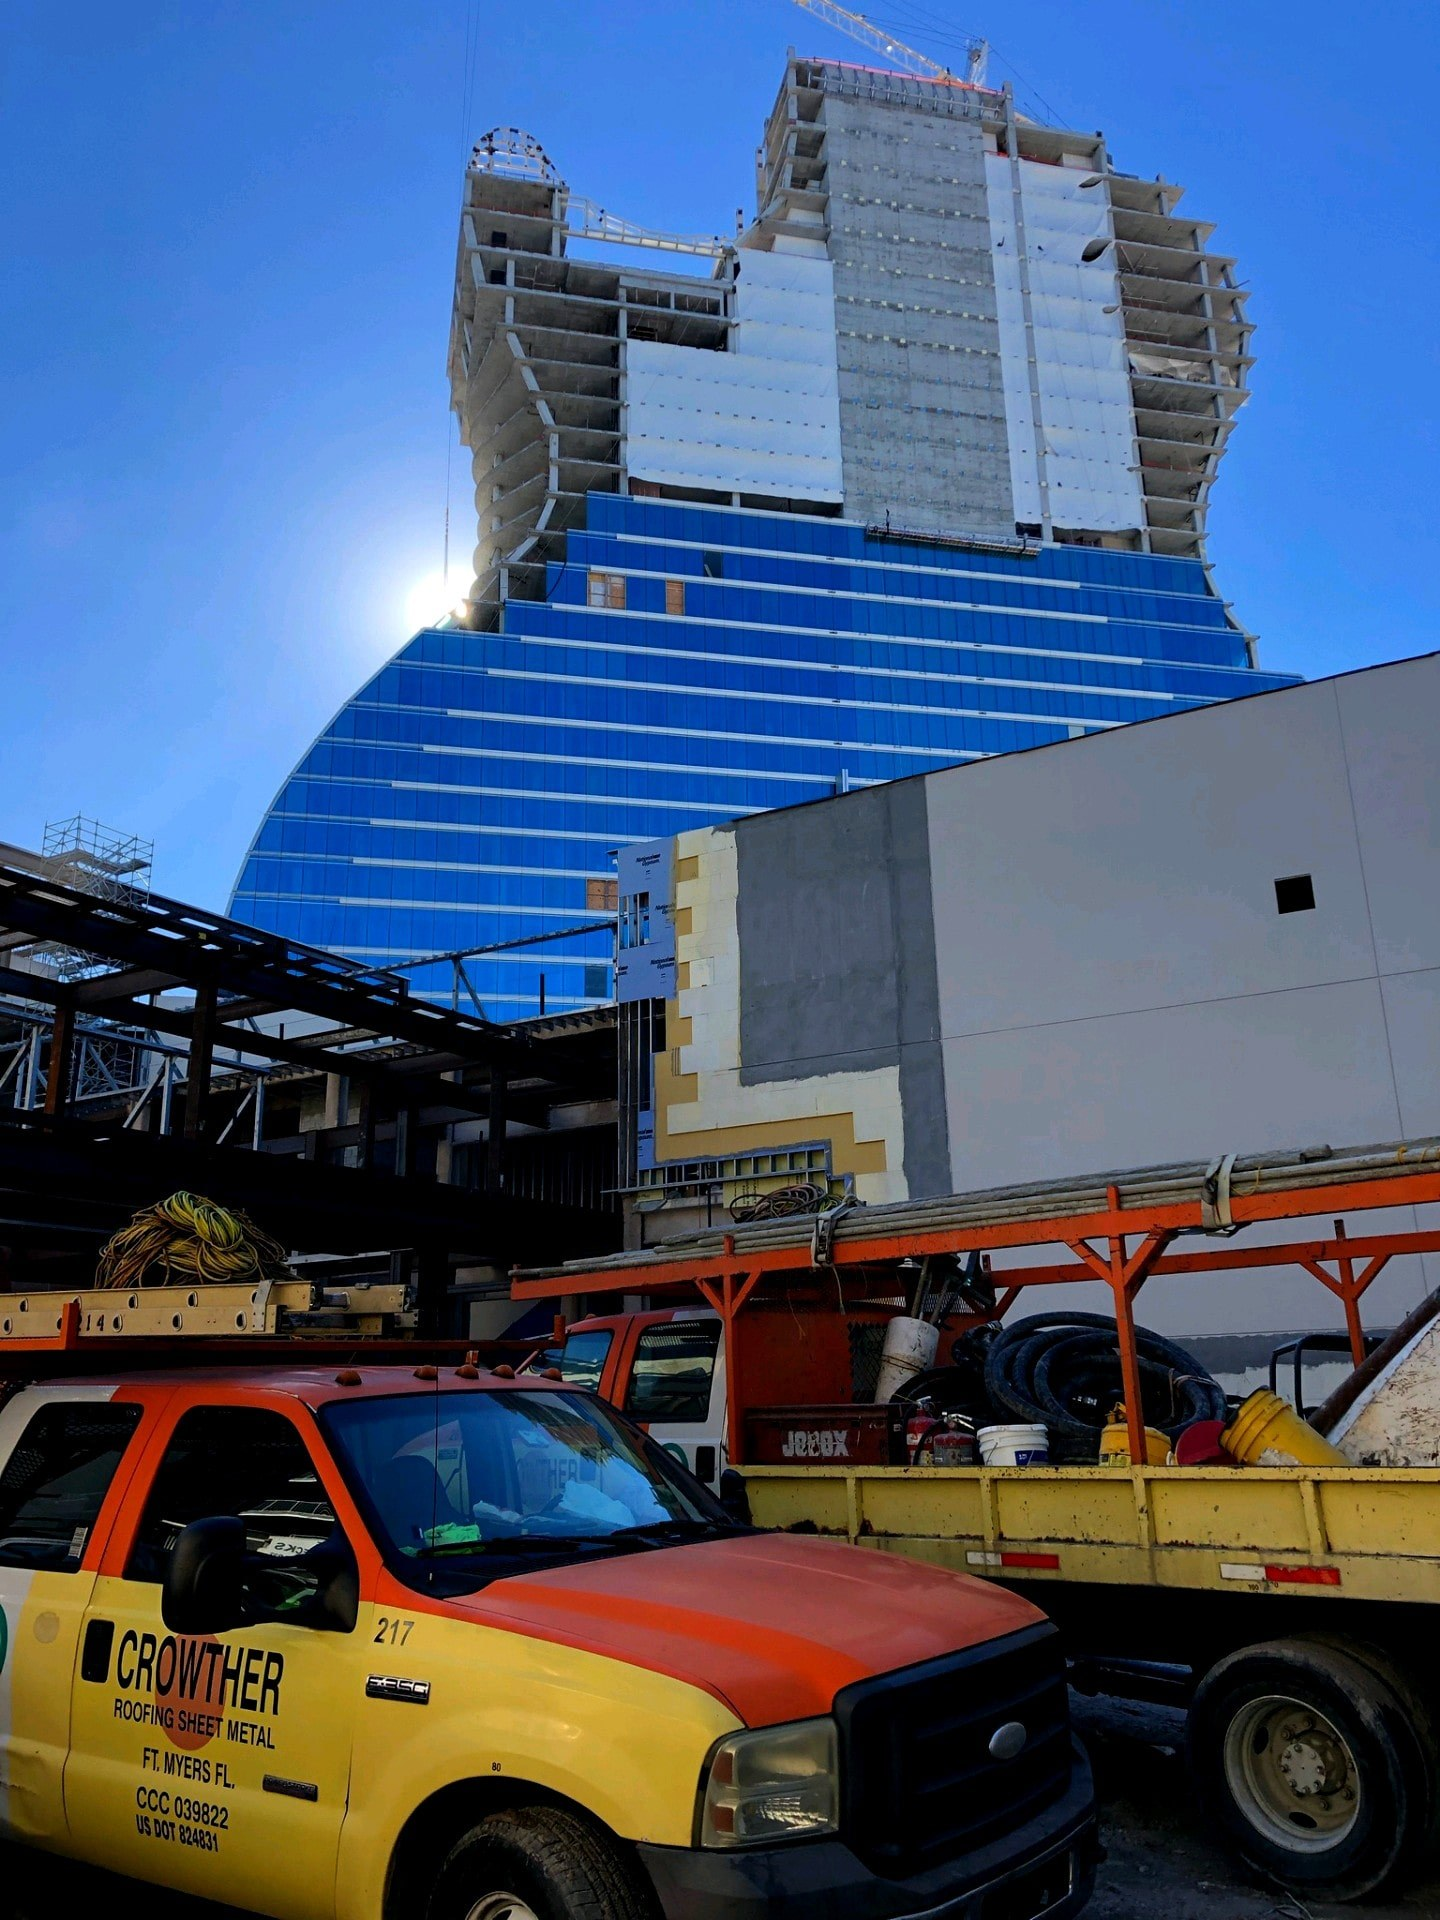 Crowther Roofing on site working on the Seminole Hard Rock Hotel & Casino Rooftop